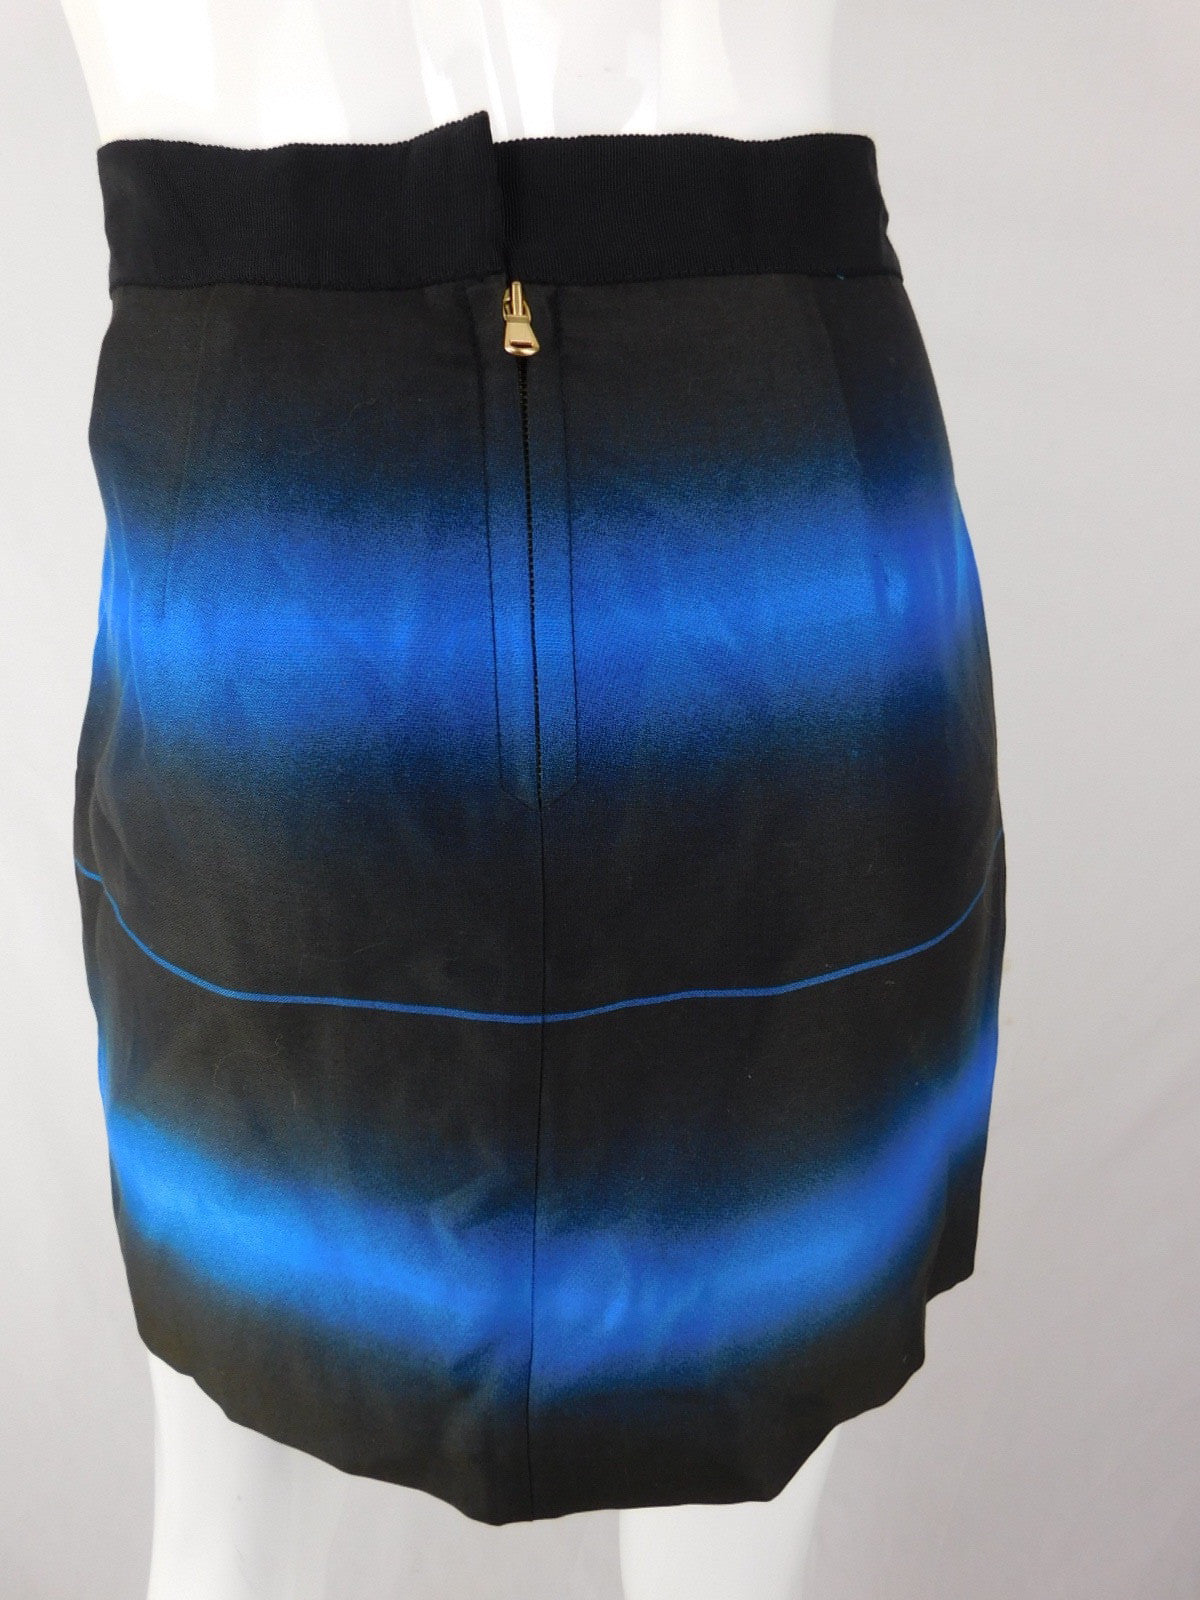 Marc by Marc Jacobs Silk Blue Black Ombre Skirt, Size 6